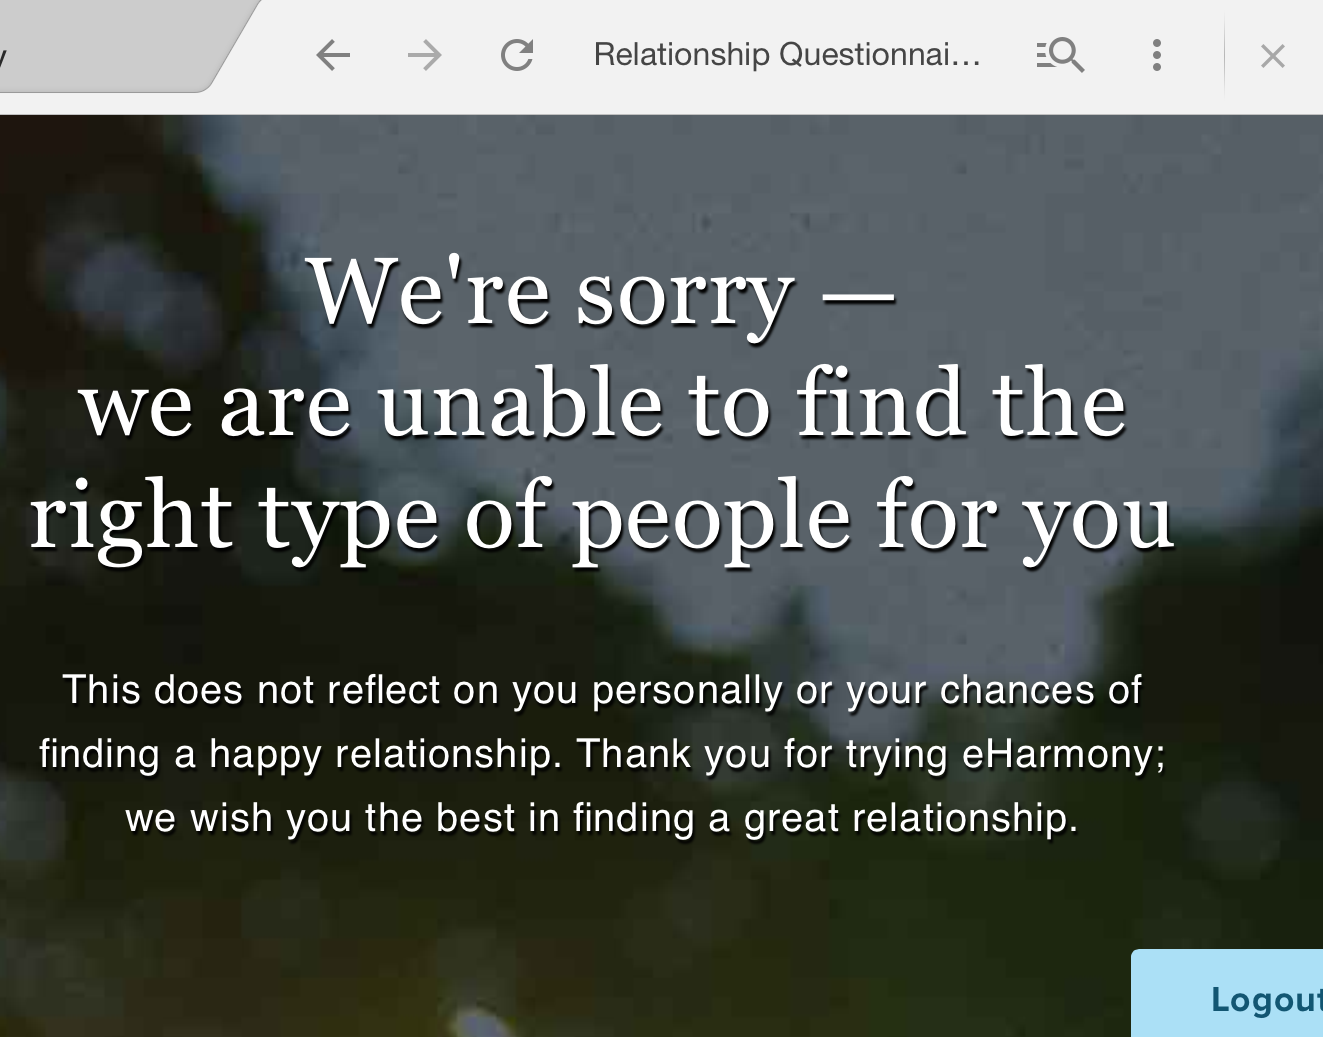 Why does eharmony reject